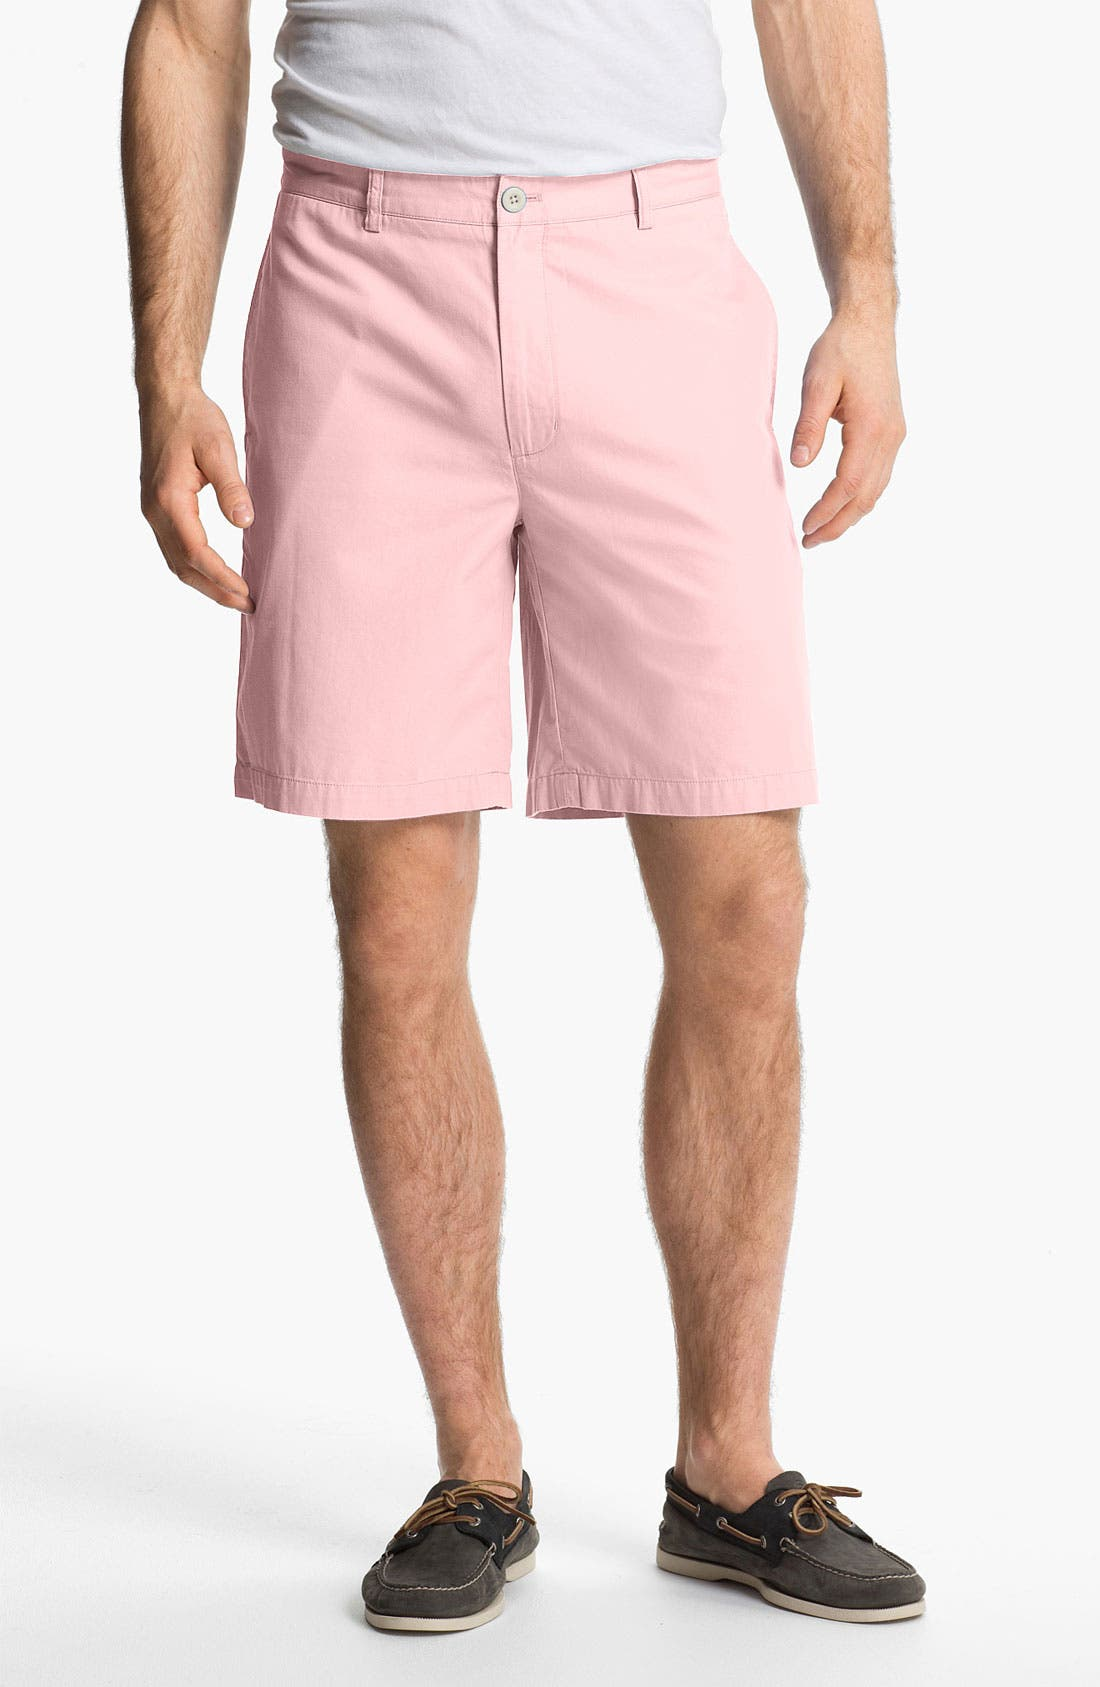 Alternate Image 1 Selected - Vineyard Vines 'Summer Club' Shorts